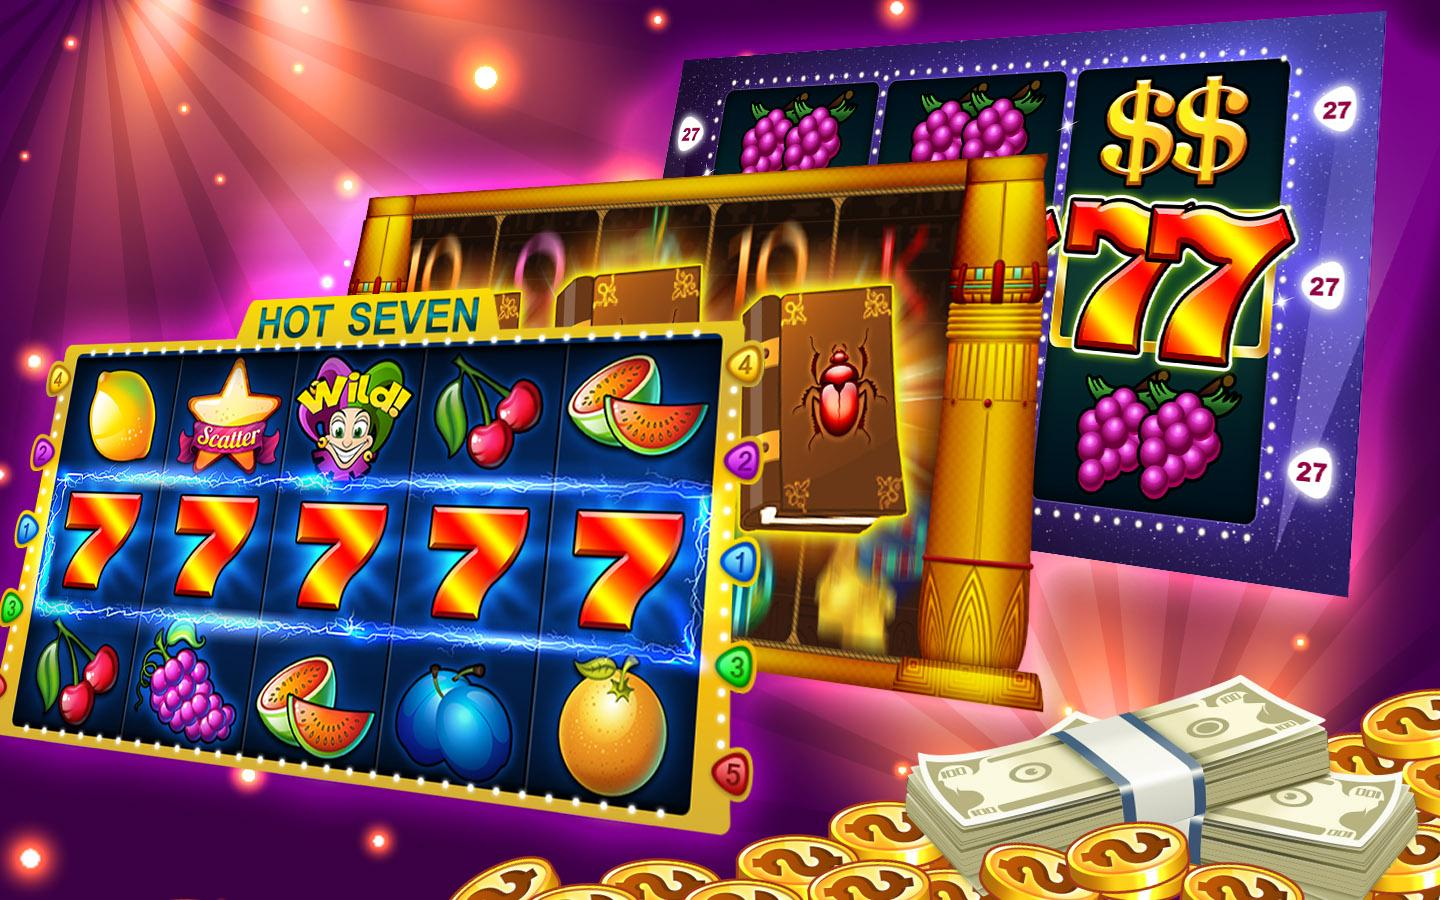 Take 5 Slot Machine - Win Big Playing Online Casino Games